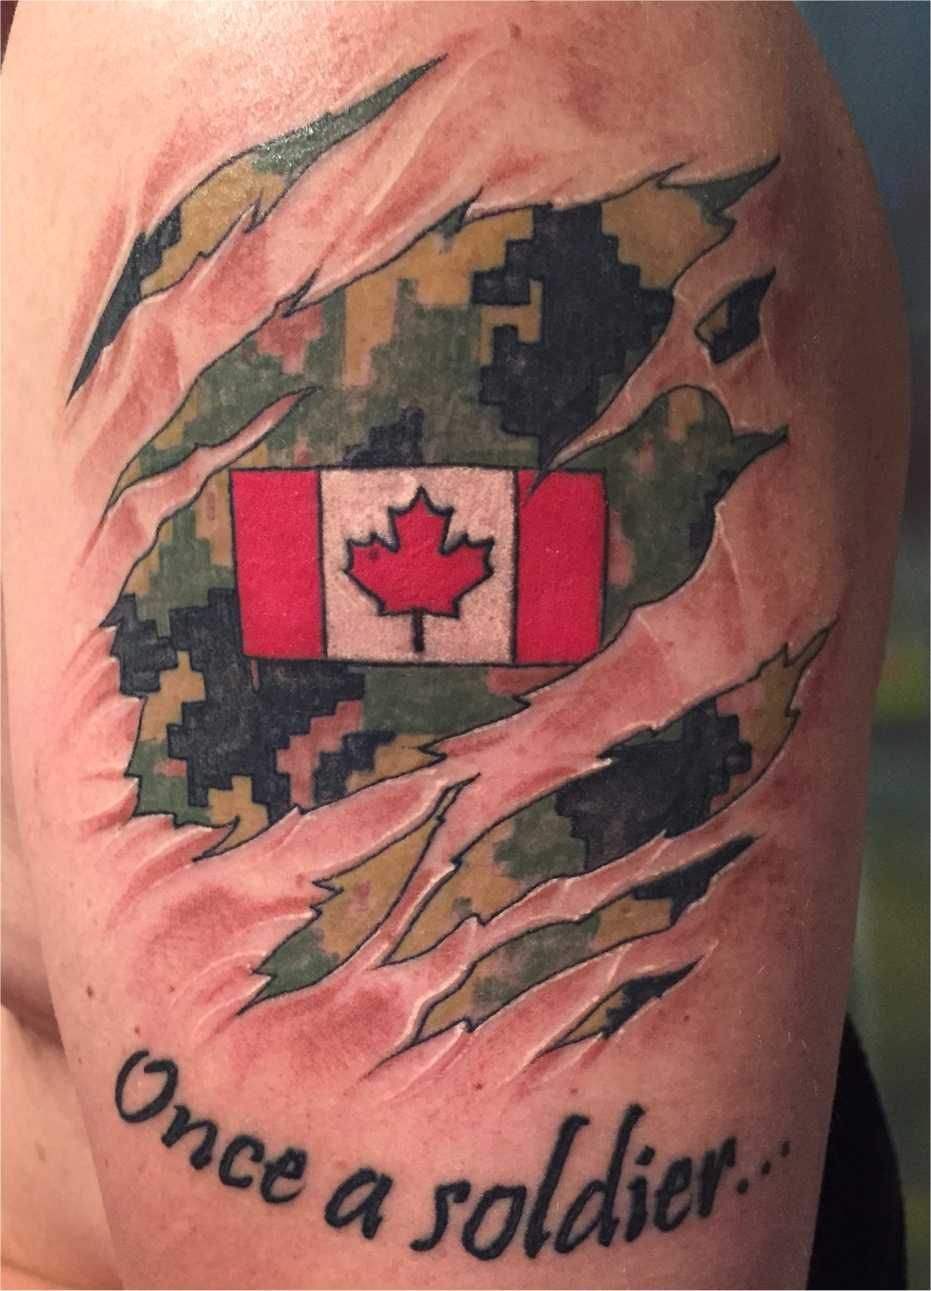 Name canadian flag ripping through skin tattoo designjpg pictures - Canadian Military Tattoos Rcaf Caf Cadpat